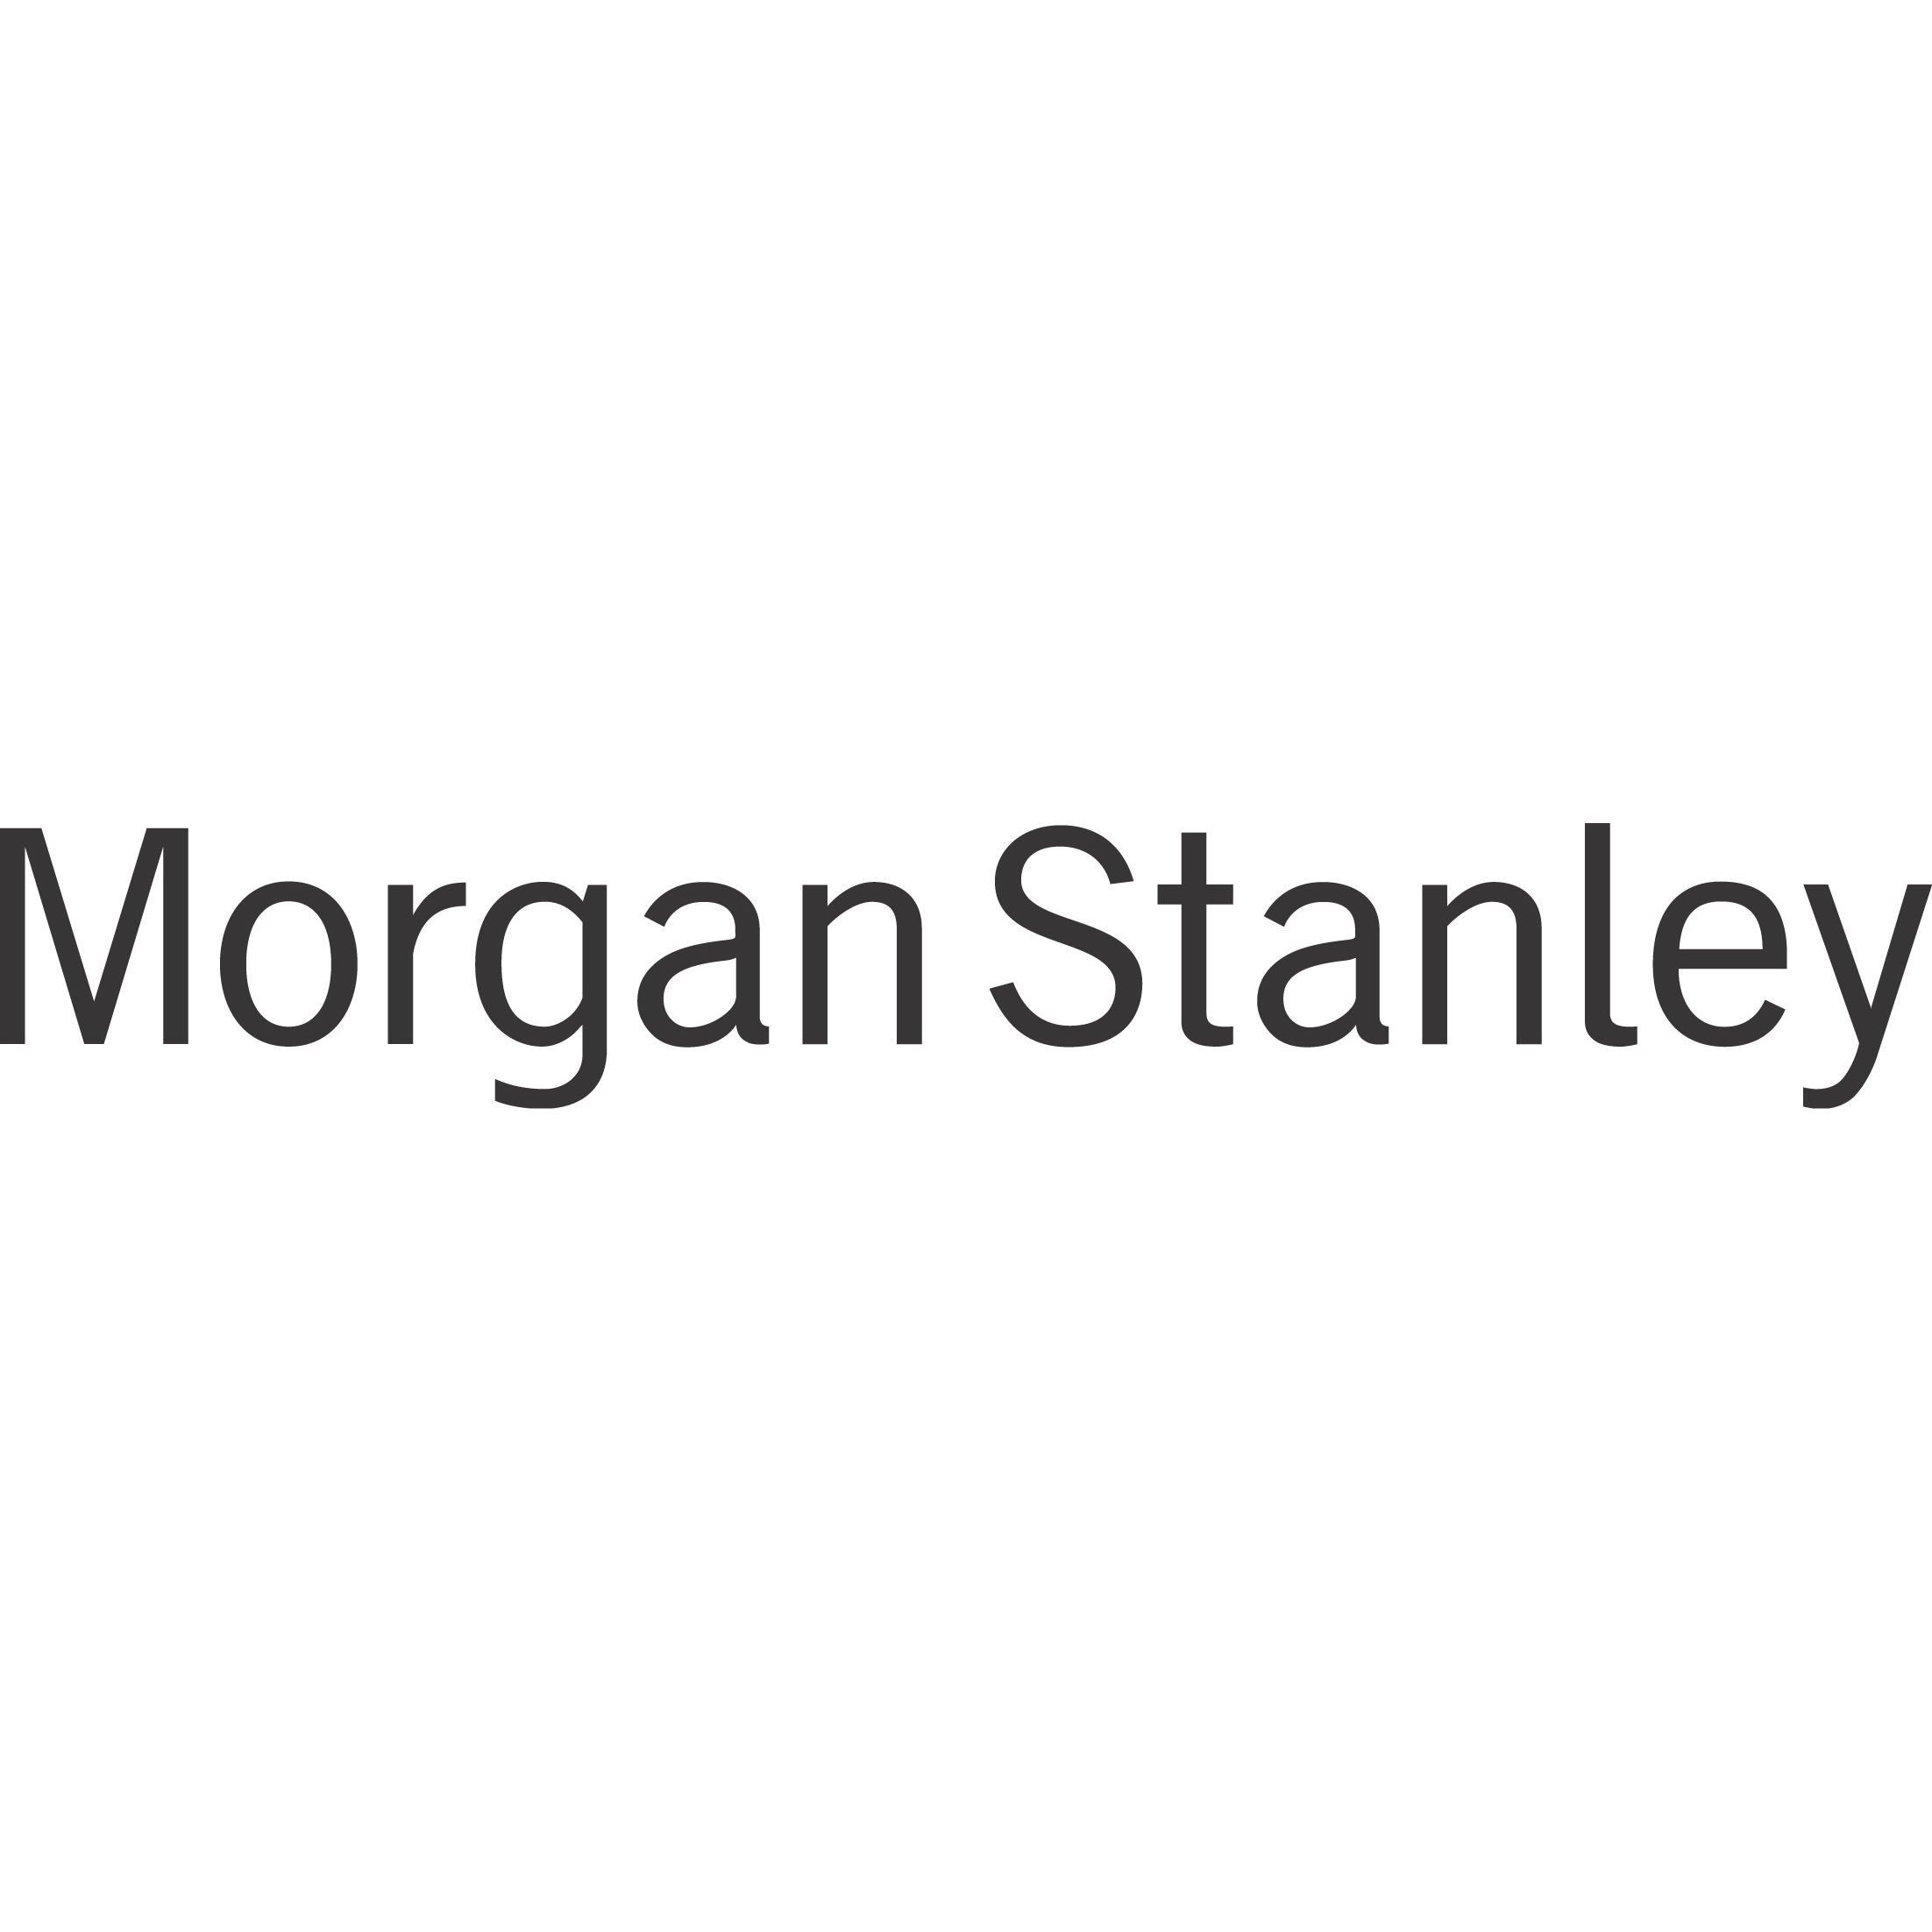 Barry D Rothenberg - Morgan Stanley | Financial Advisor in Morristown,New Jersey